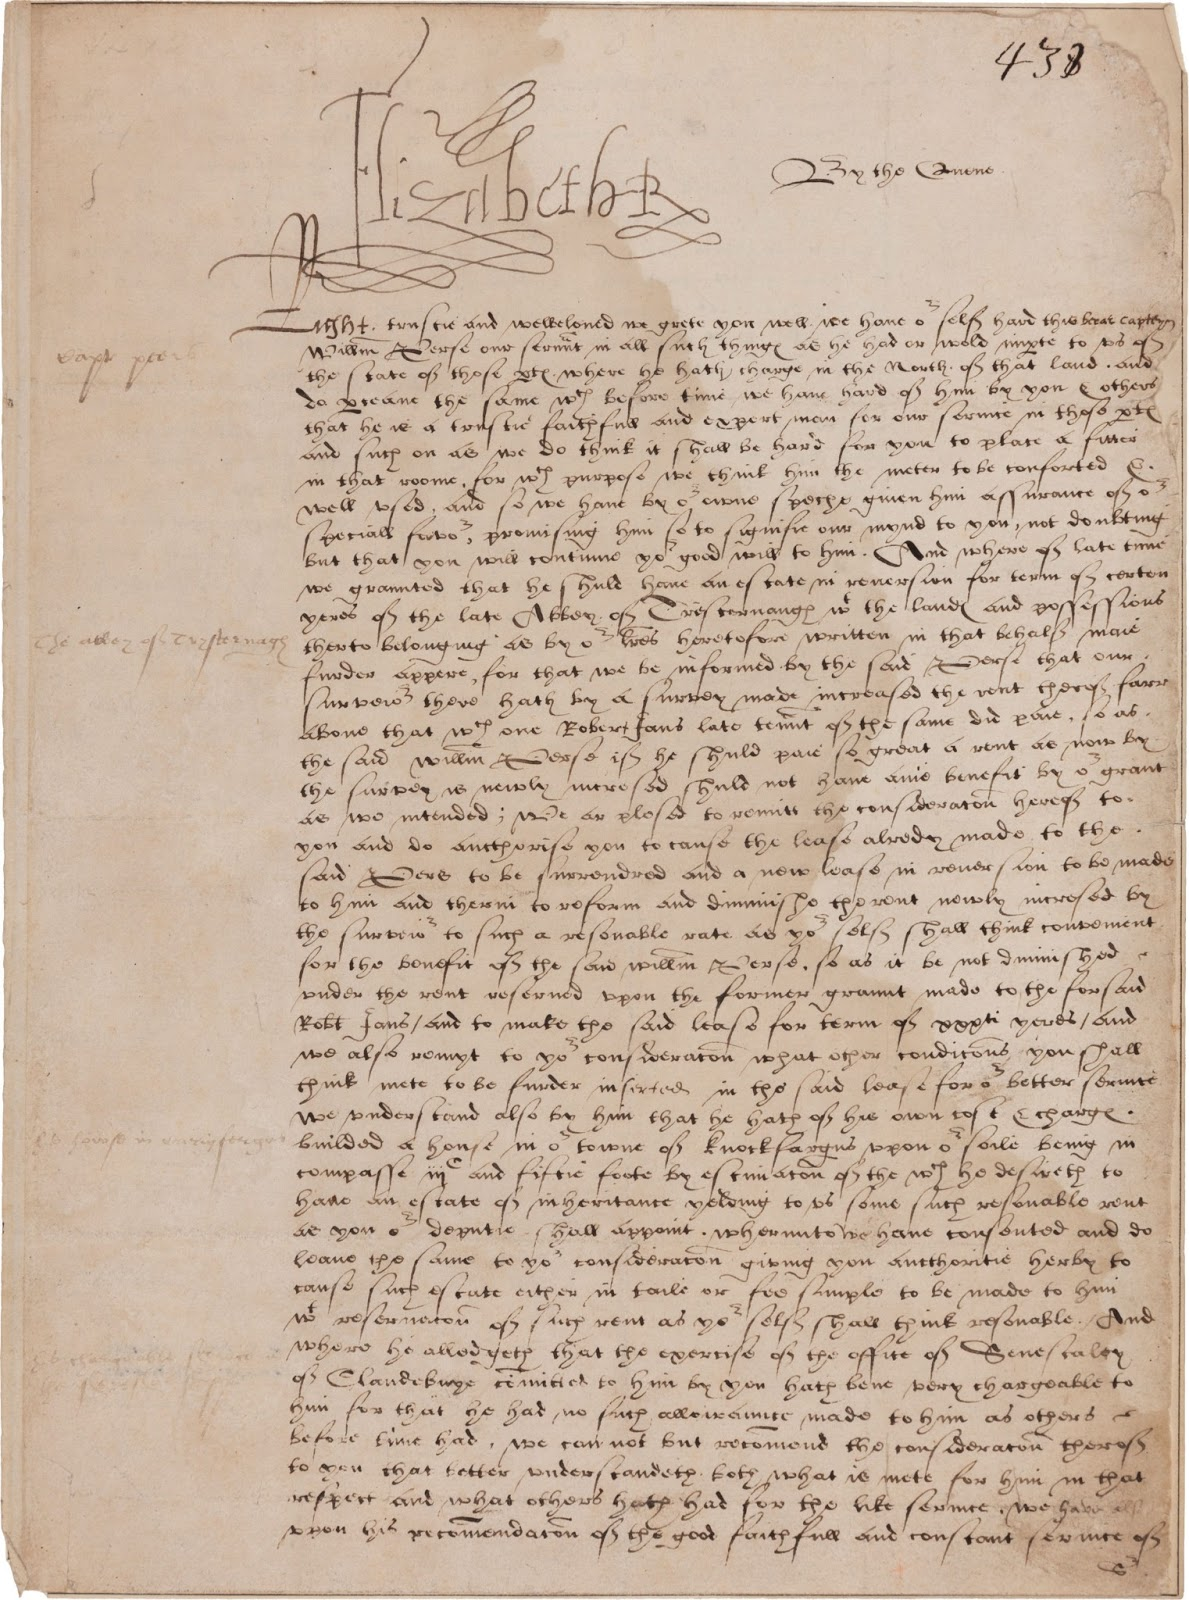 queen elizabeth 1 essay introduction Elizabeth the queen by emmelia maglinte elizabeth was born on september 7 th in 1533 she was the daughter of king henry viii, and anne boleyn elizabeth was one of the first english monarchs to be born of pure english parents.